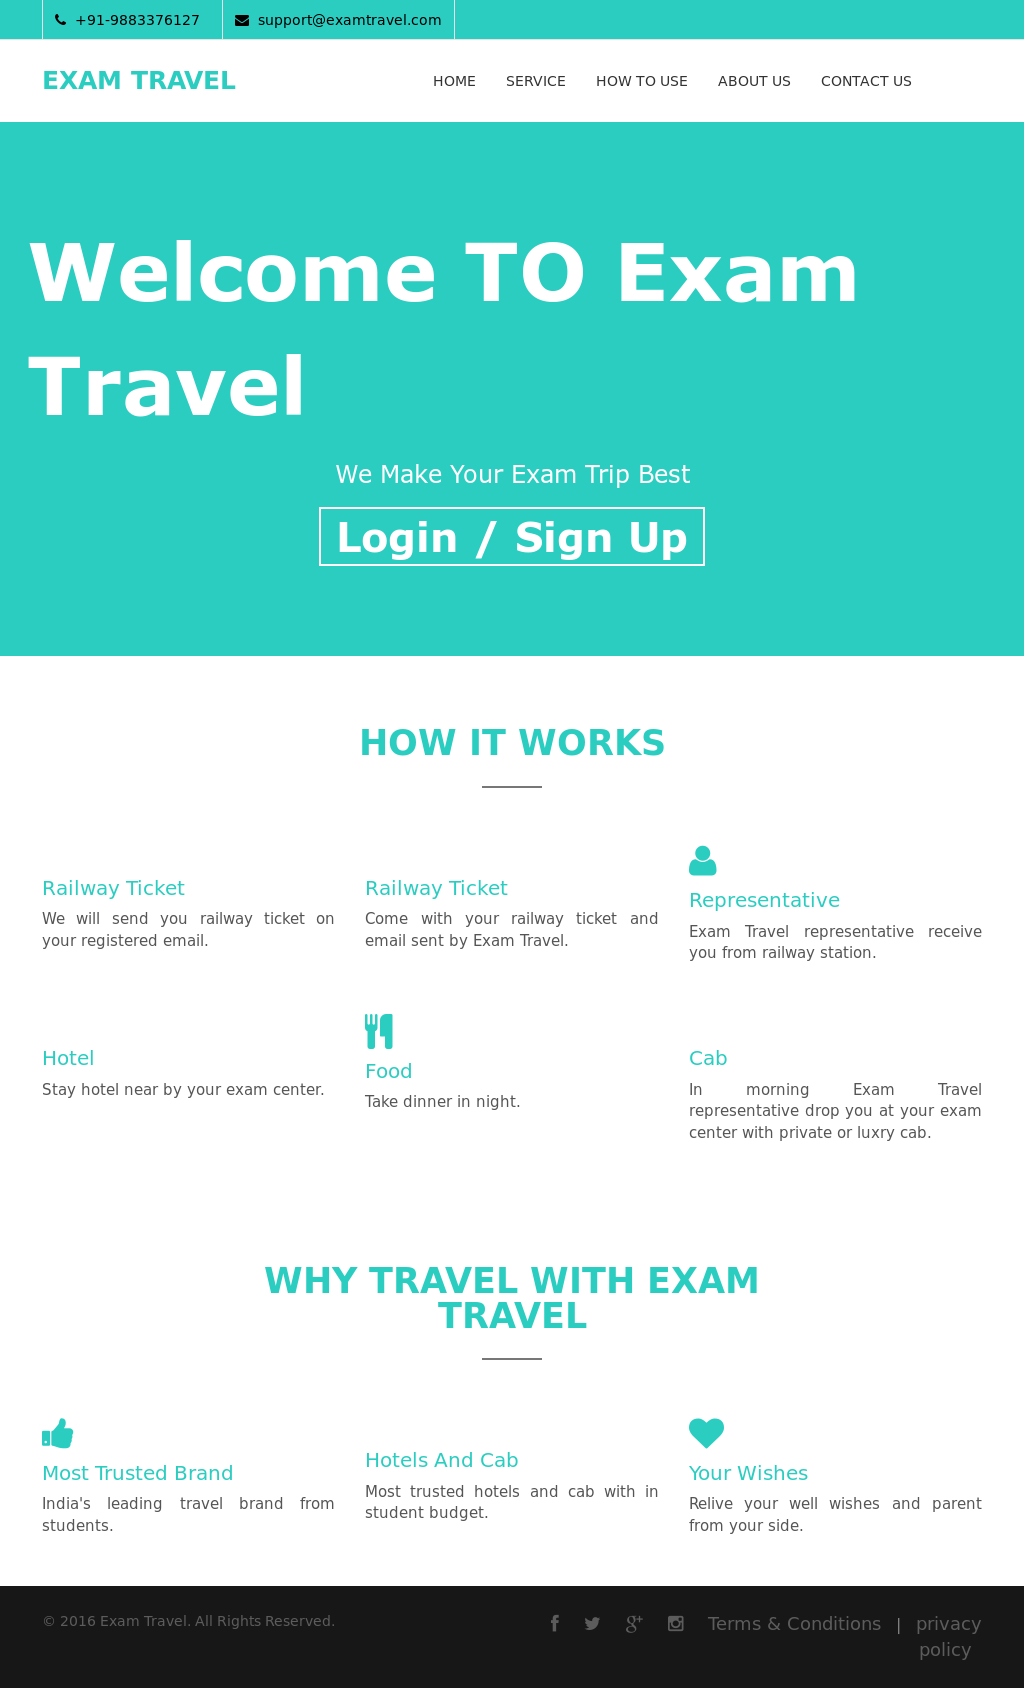 ExamTravel Competitors, Revenue and Employees - Owler Company Profile